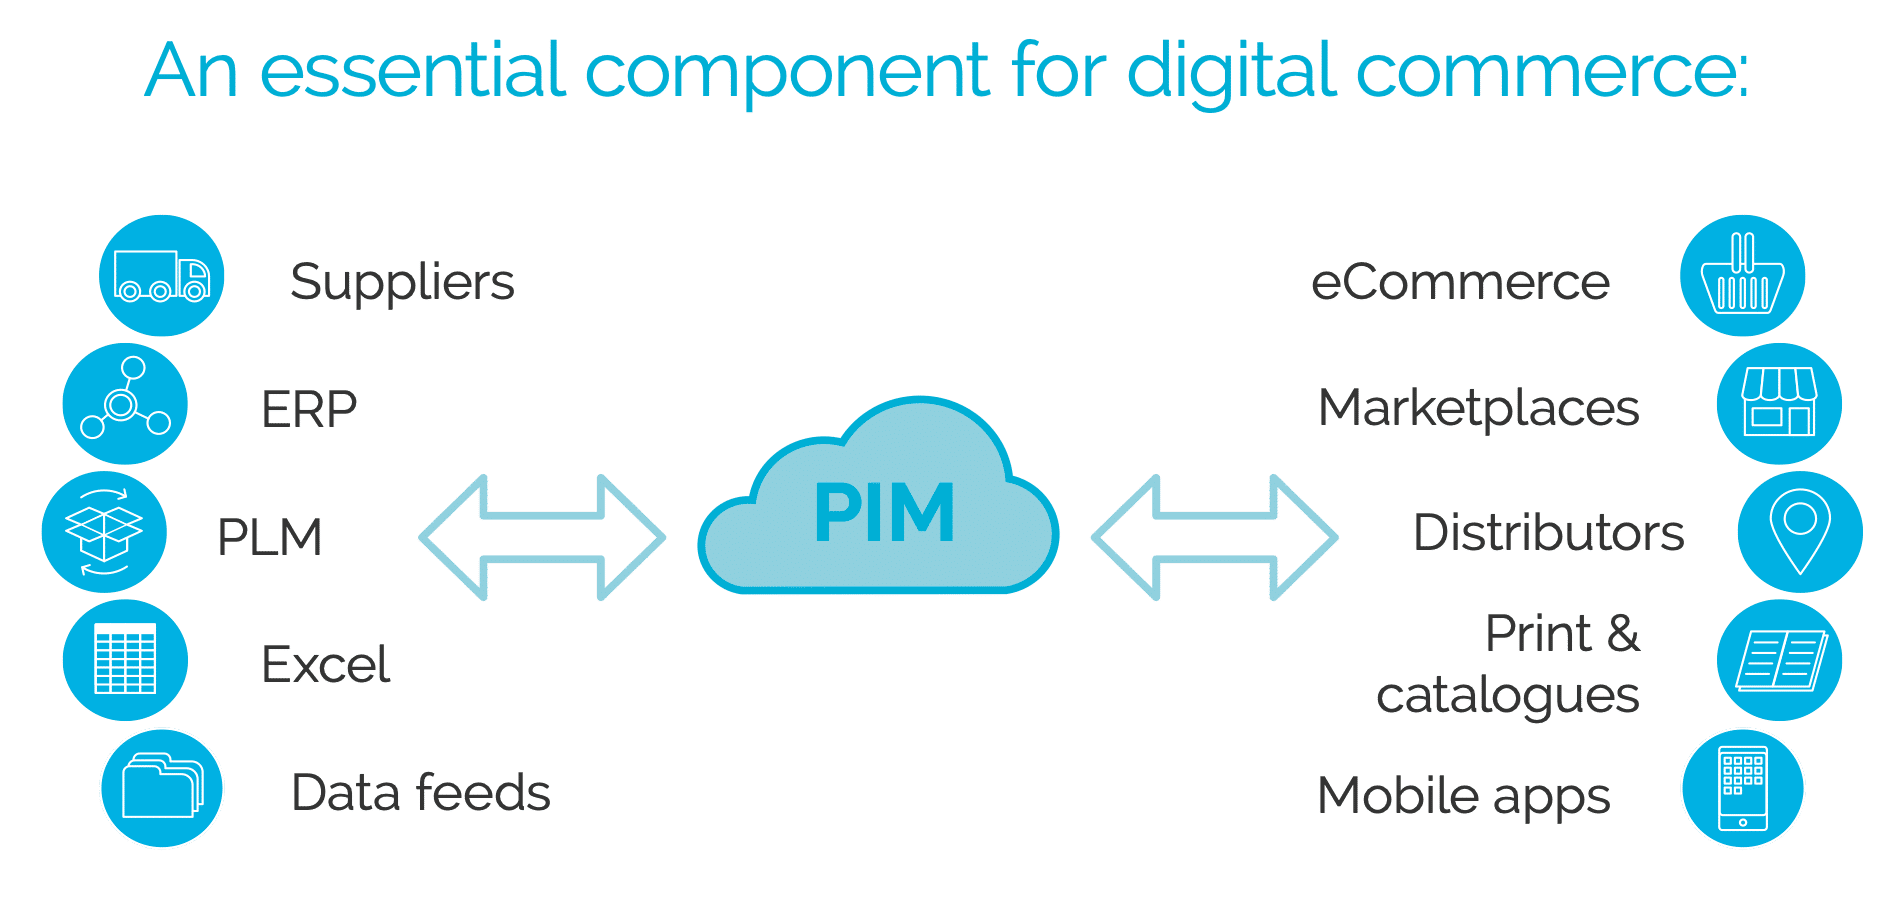 PIM - Product Information Management sits between internal systems and external sales channels